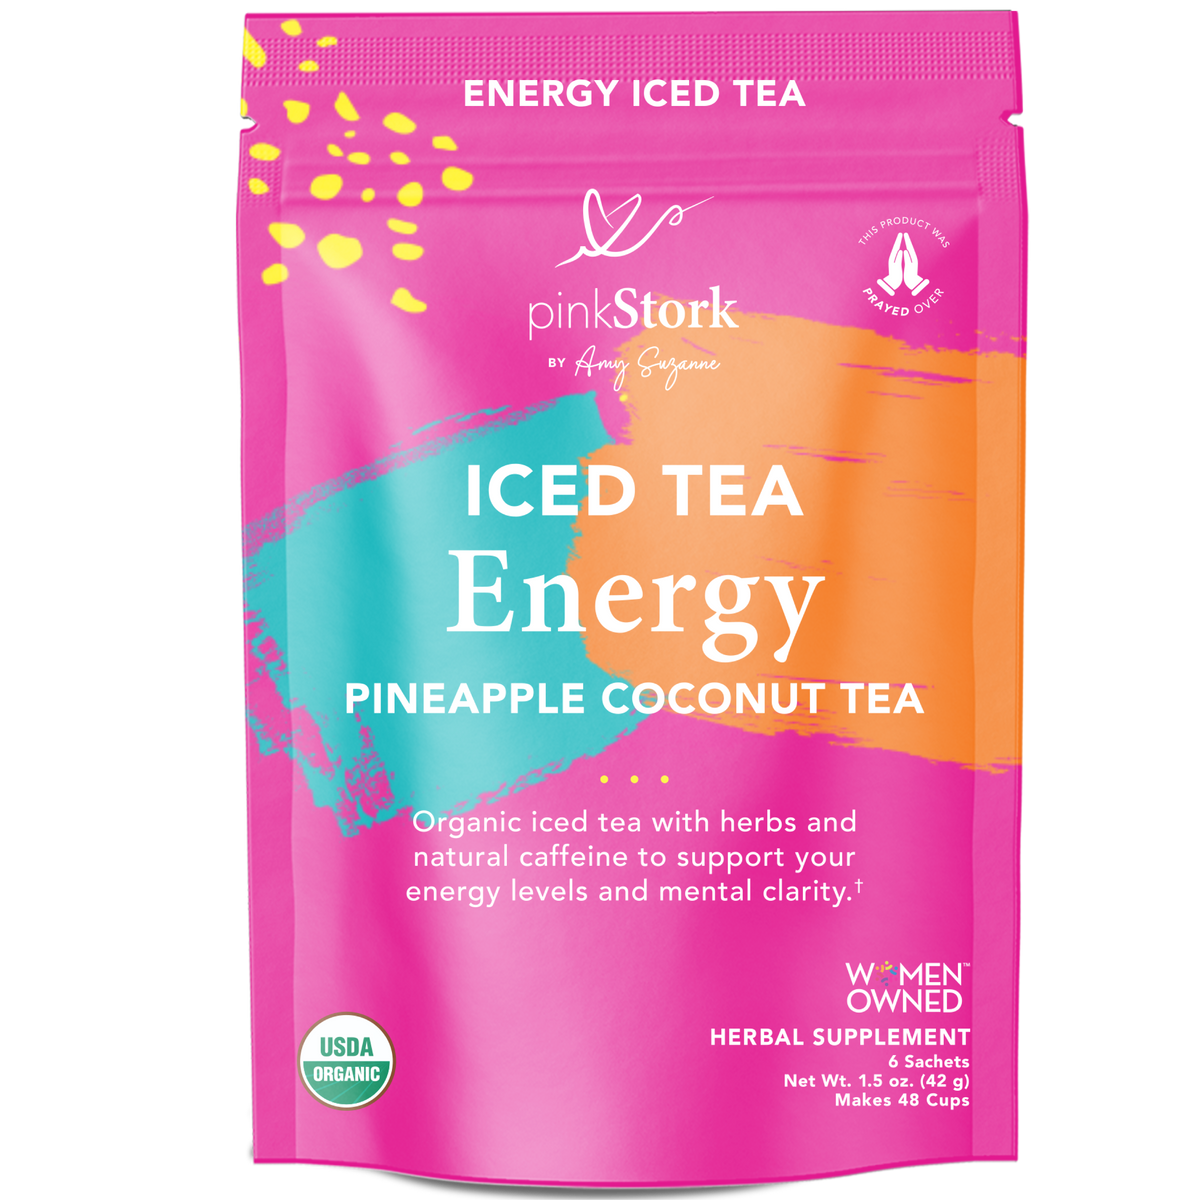 Iced Energy Tea: 48 Cups - Pink Stork